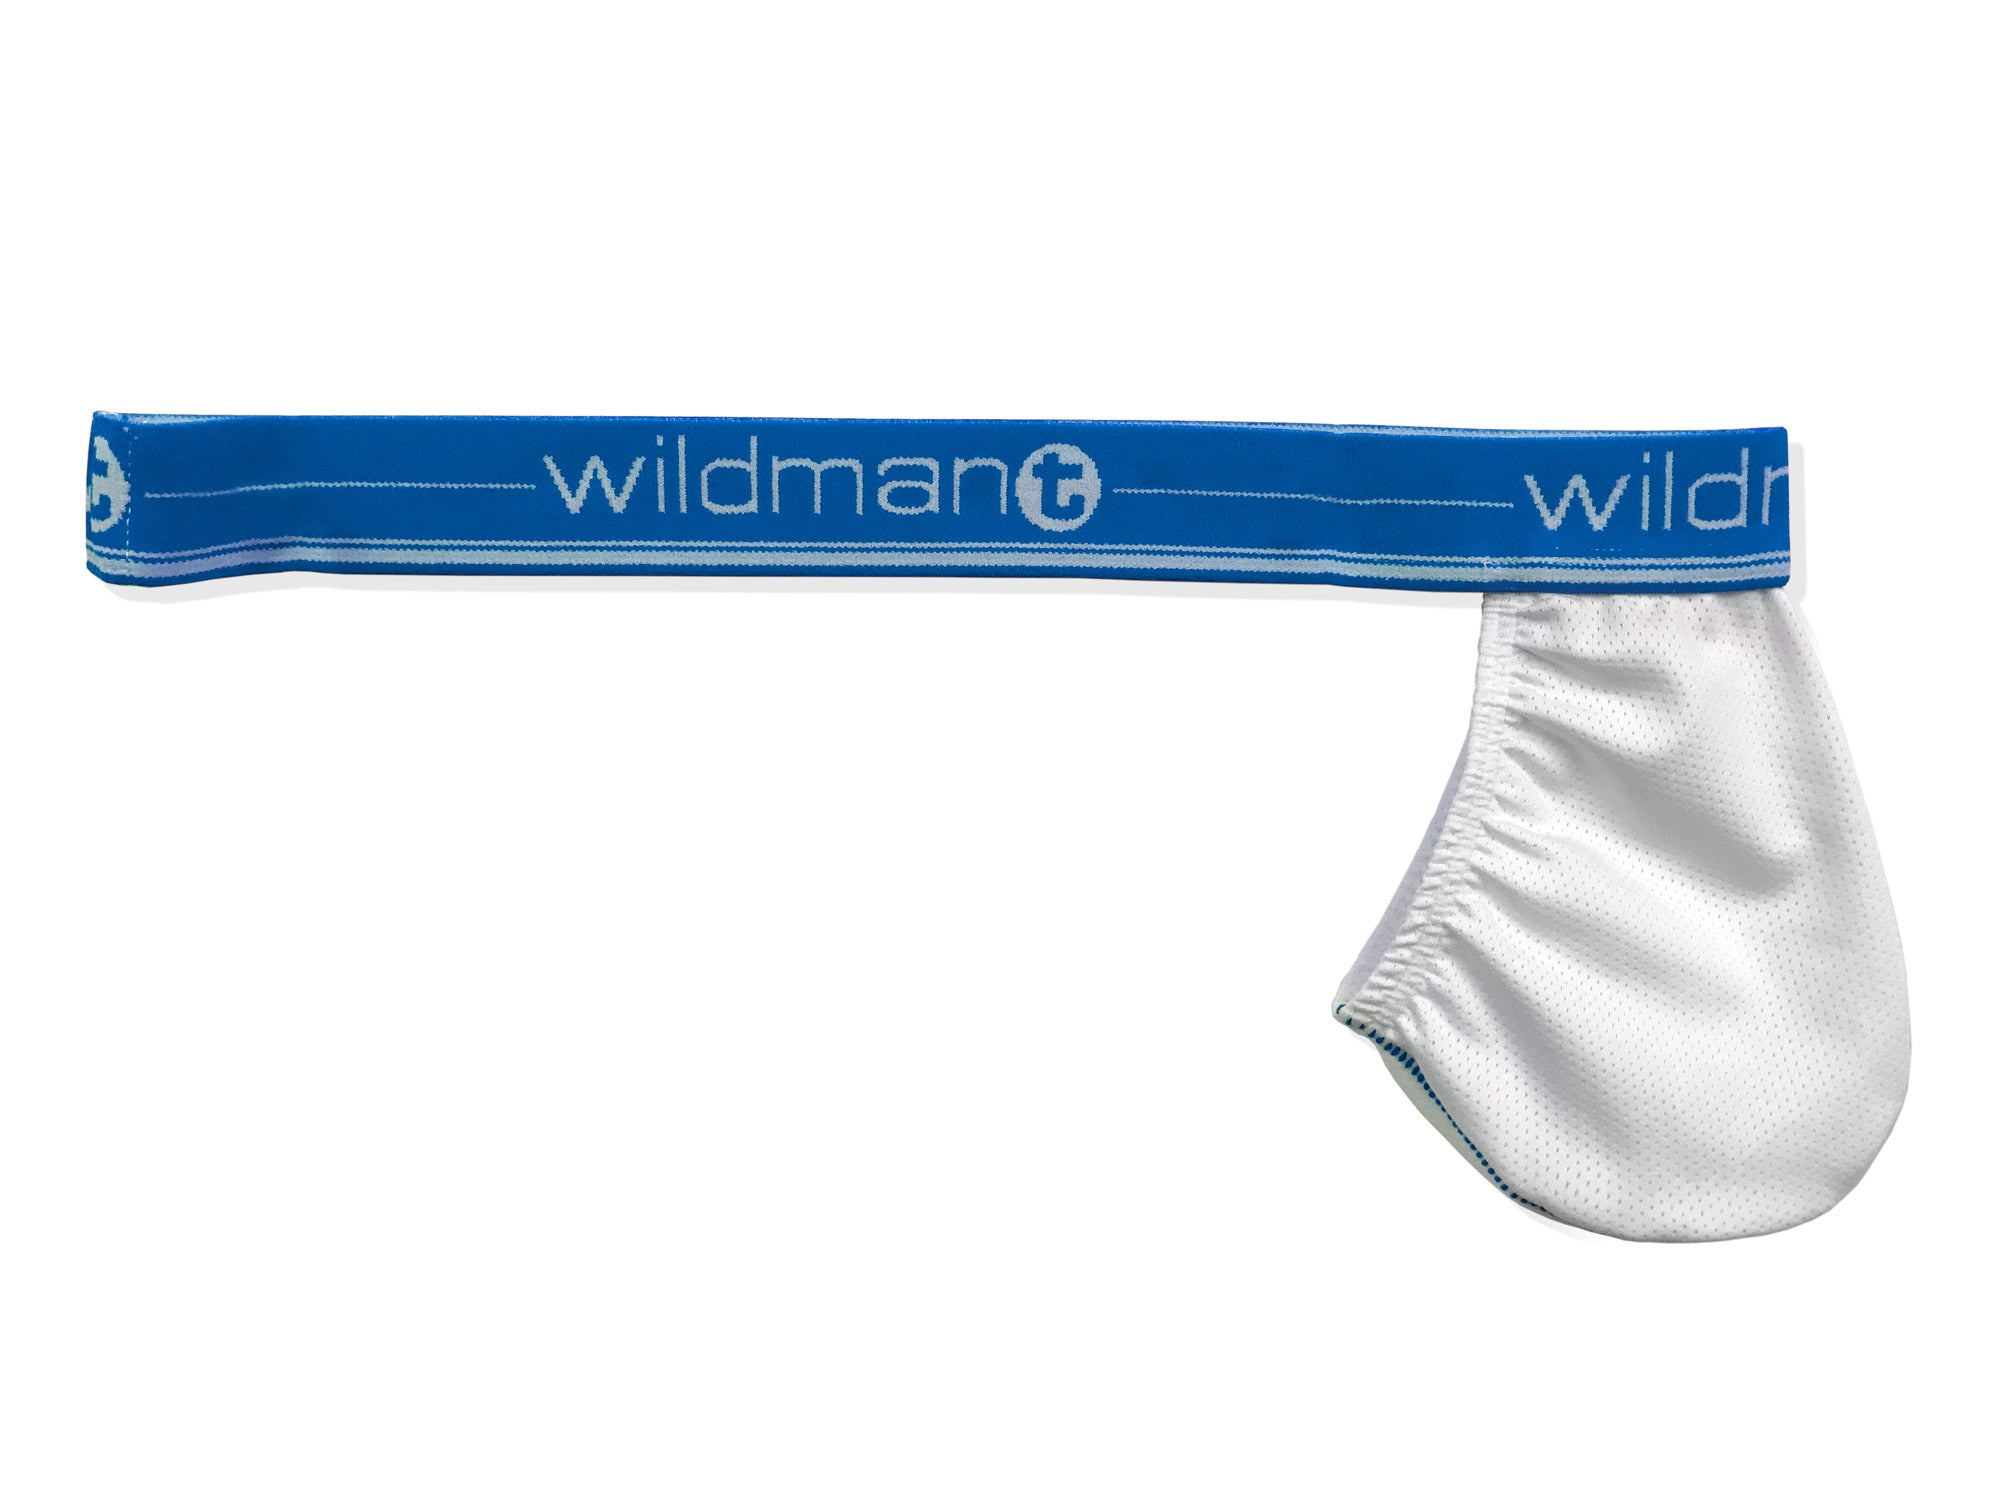 Big Boy Strapless Pouch White Mesh w/Blue Band - Big Penis Underwear, Wildman T - WildmanT